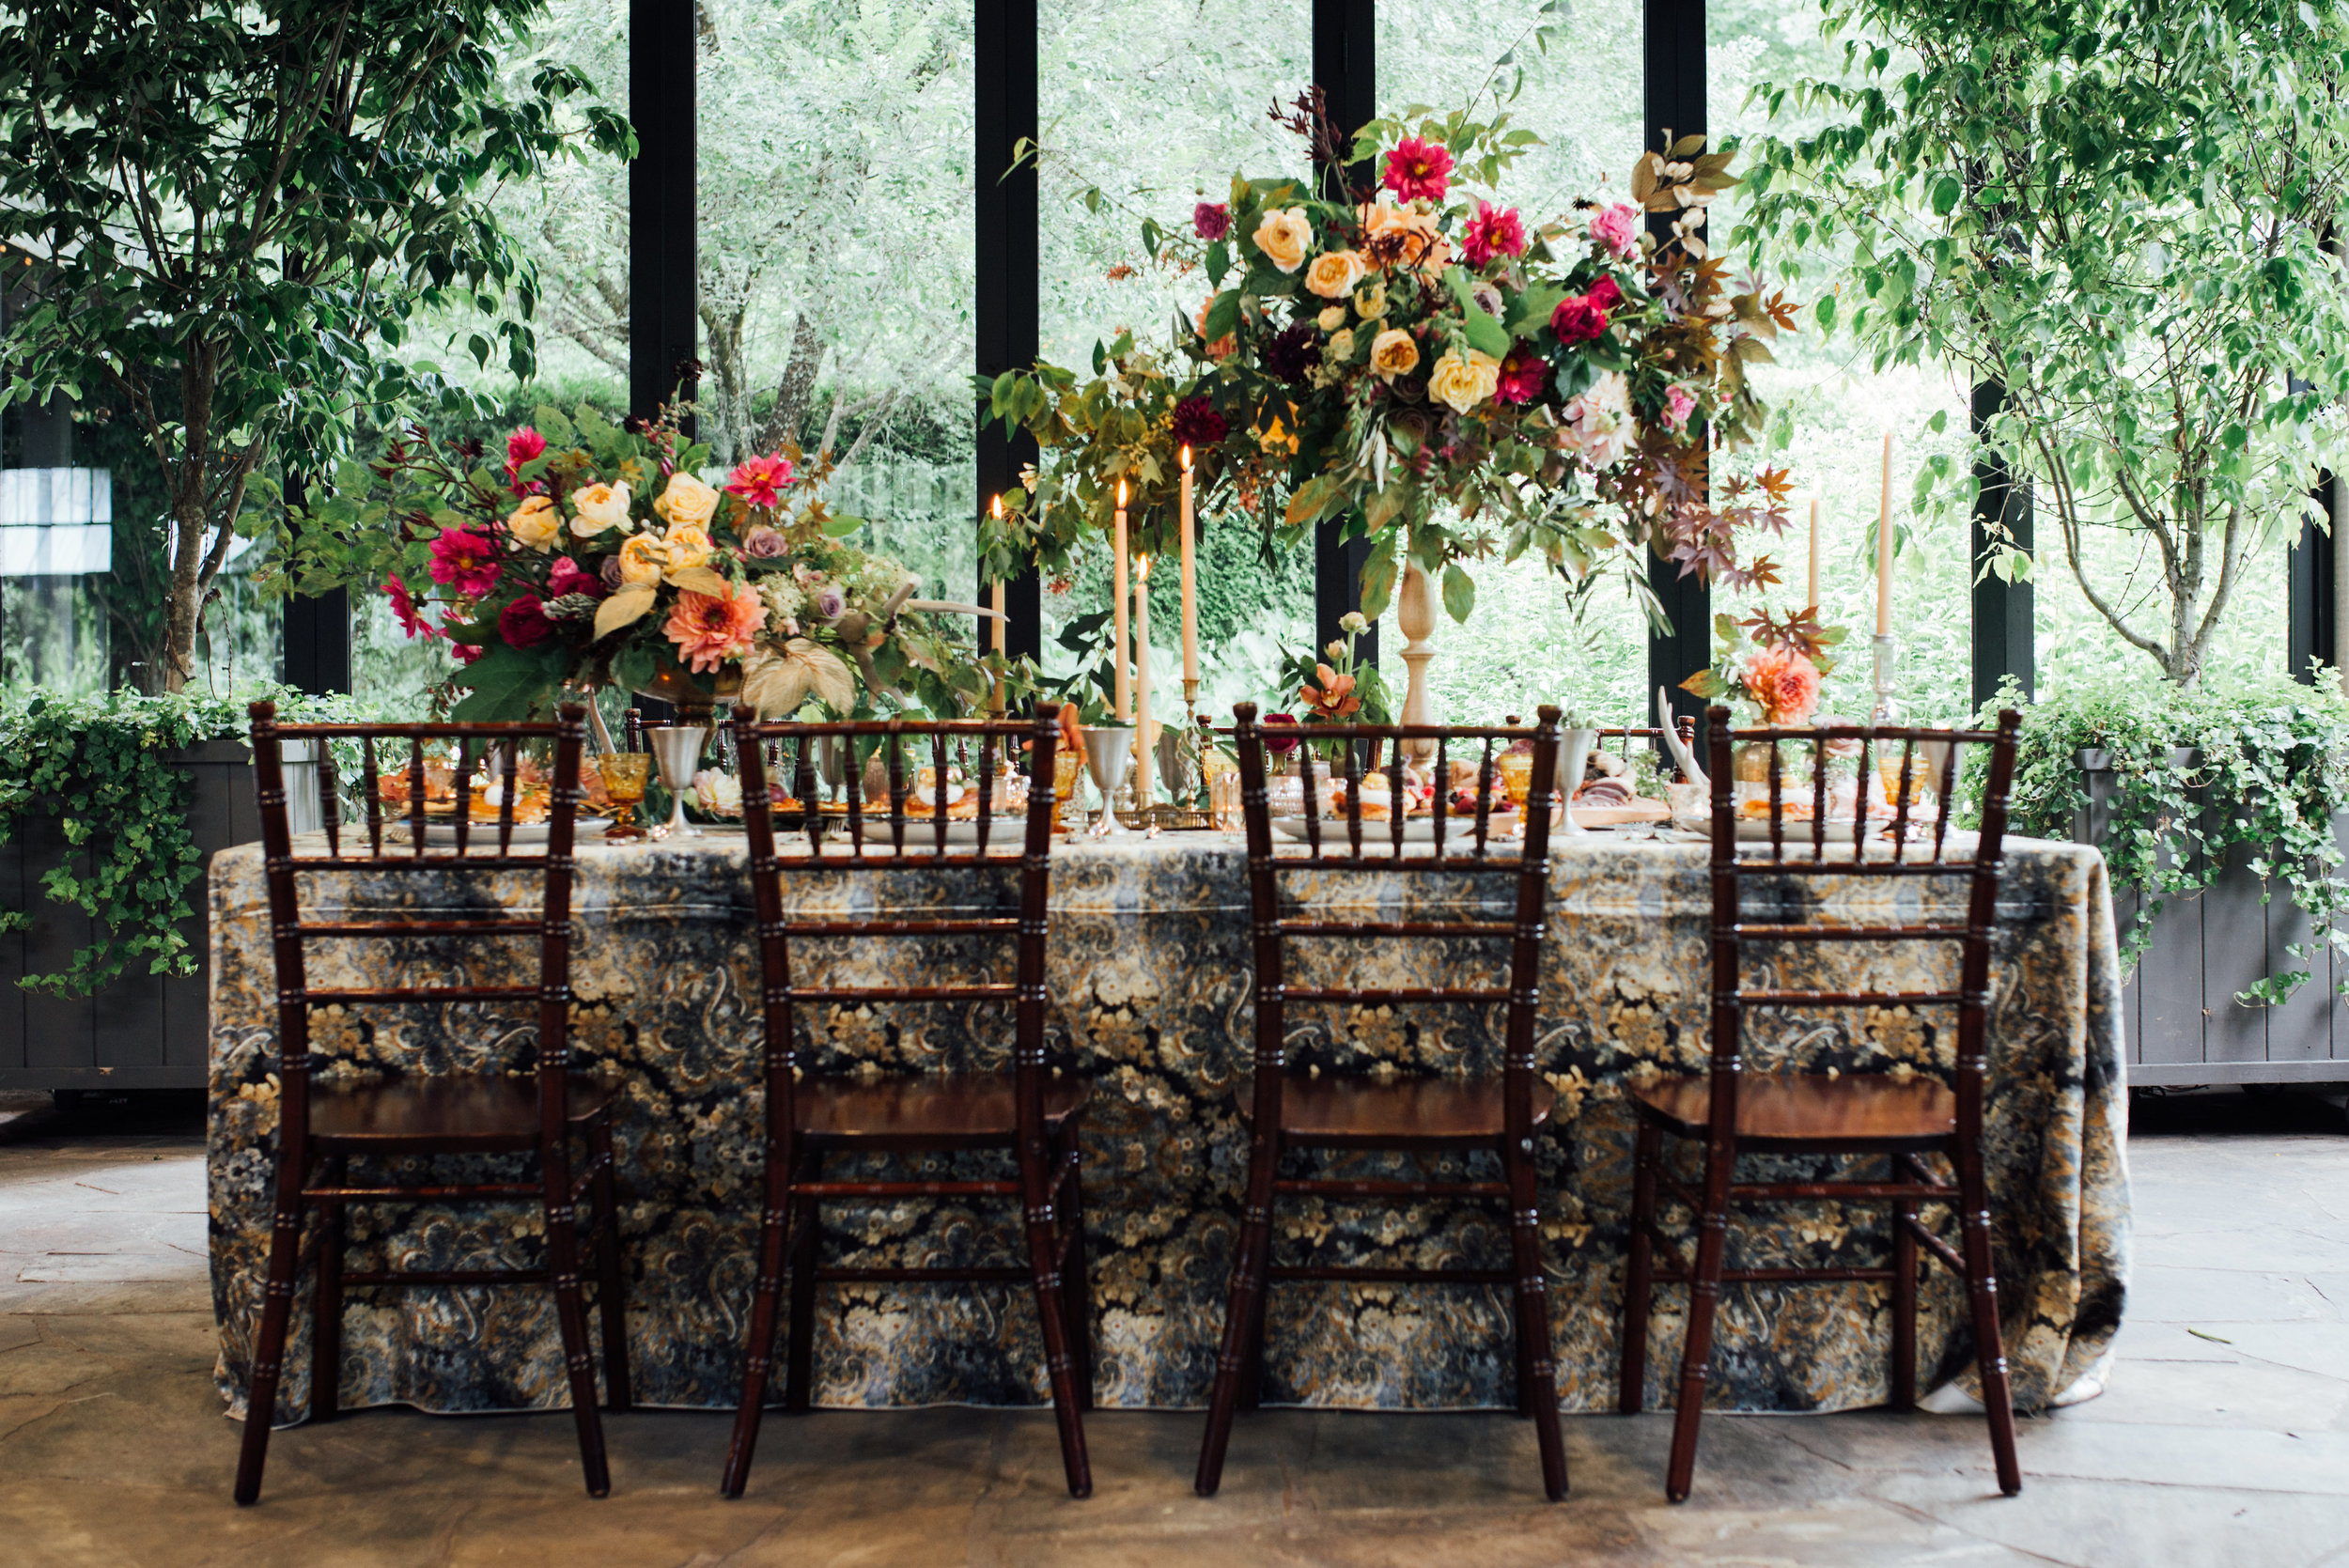 Game of Thrones Editorial Shoot by Whiskey & White Events. At the Old Edwards Inn in Highlands, NC.   Photo by Cameron Reynolds Photography  Design & Styling by Whiskey & White Events  Menus by One and Only Paper  Florals by Floressence Flowers  Linens by La Tavola Linens